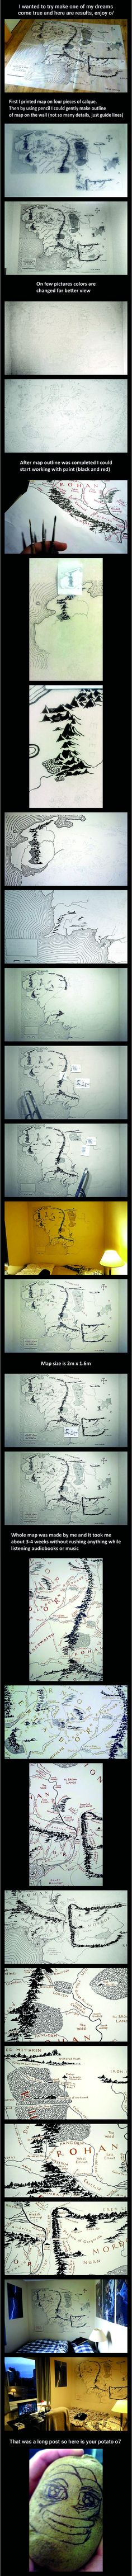 Middle-Earth Map on the wall (DIY edition)